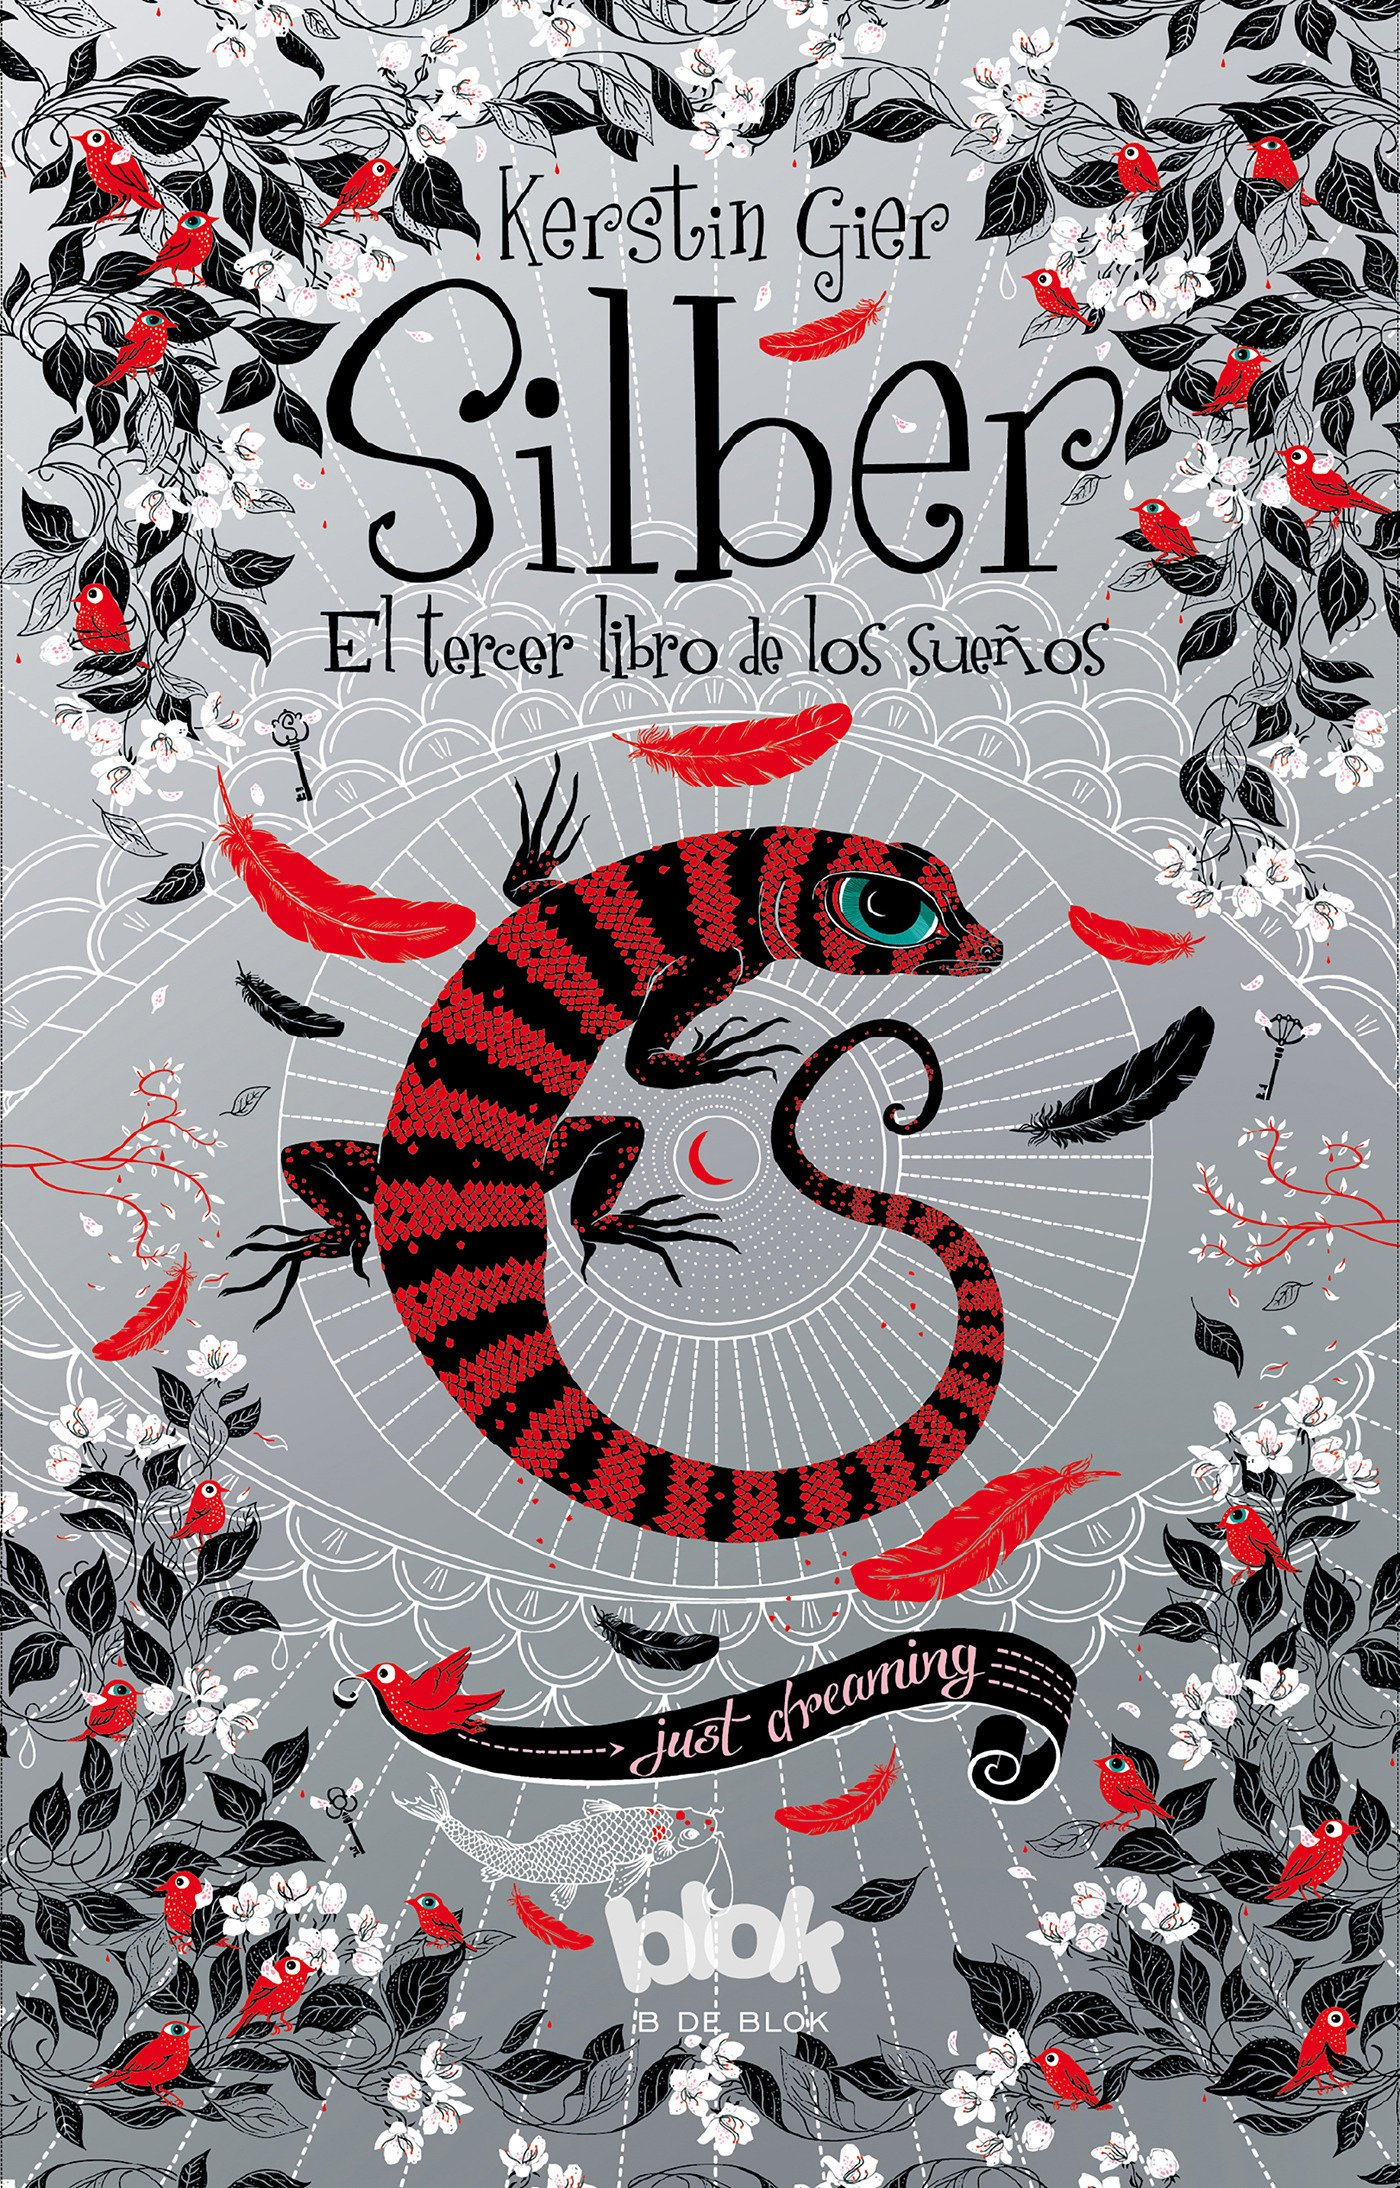 Amazon.com: Silber. El tercer libro de los sueños / Silber 3. The Third Book of Dreams (Silber: The Book of Dreams) (Spanish Edition) (9788416075935): ...